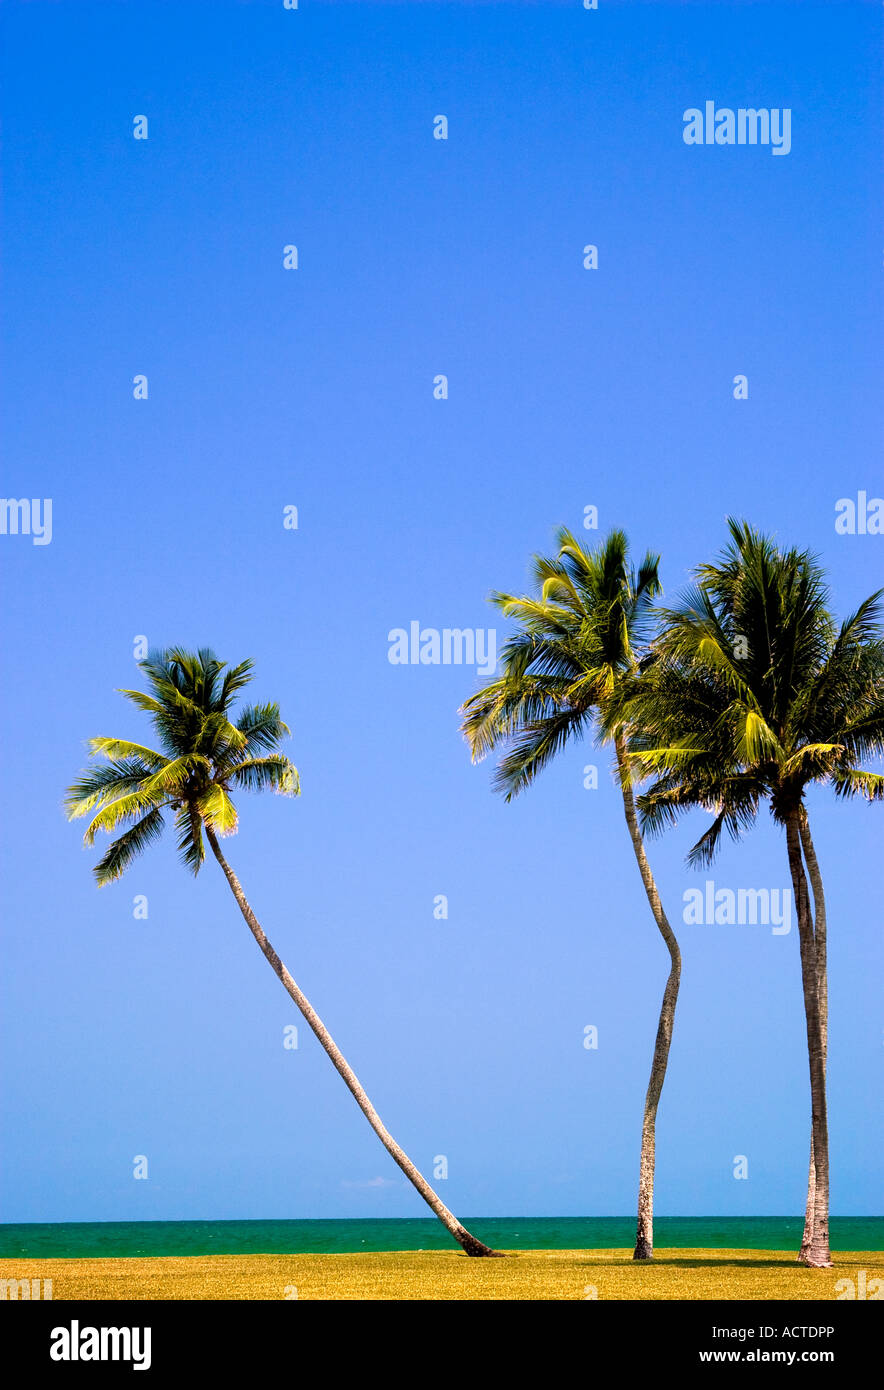 tilted palm trees - Stock Image